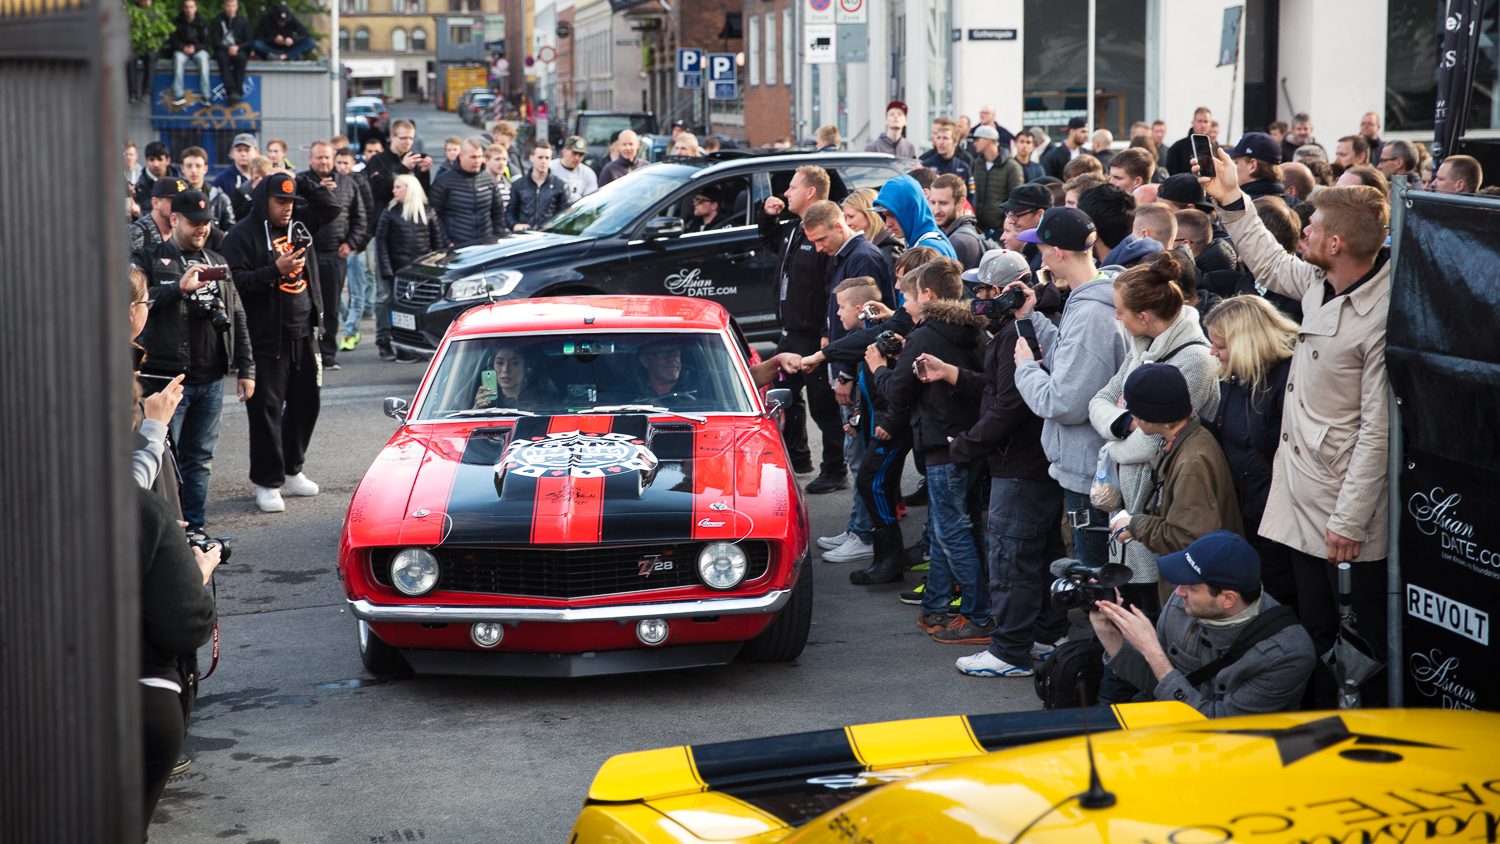 SMoores_15-05-25_Gumball 3000 Day 2_0366-Edit.jpg